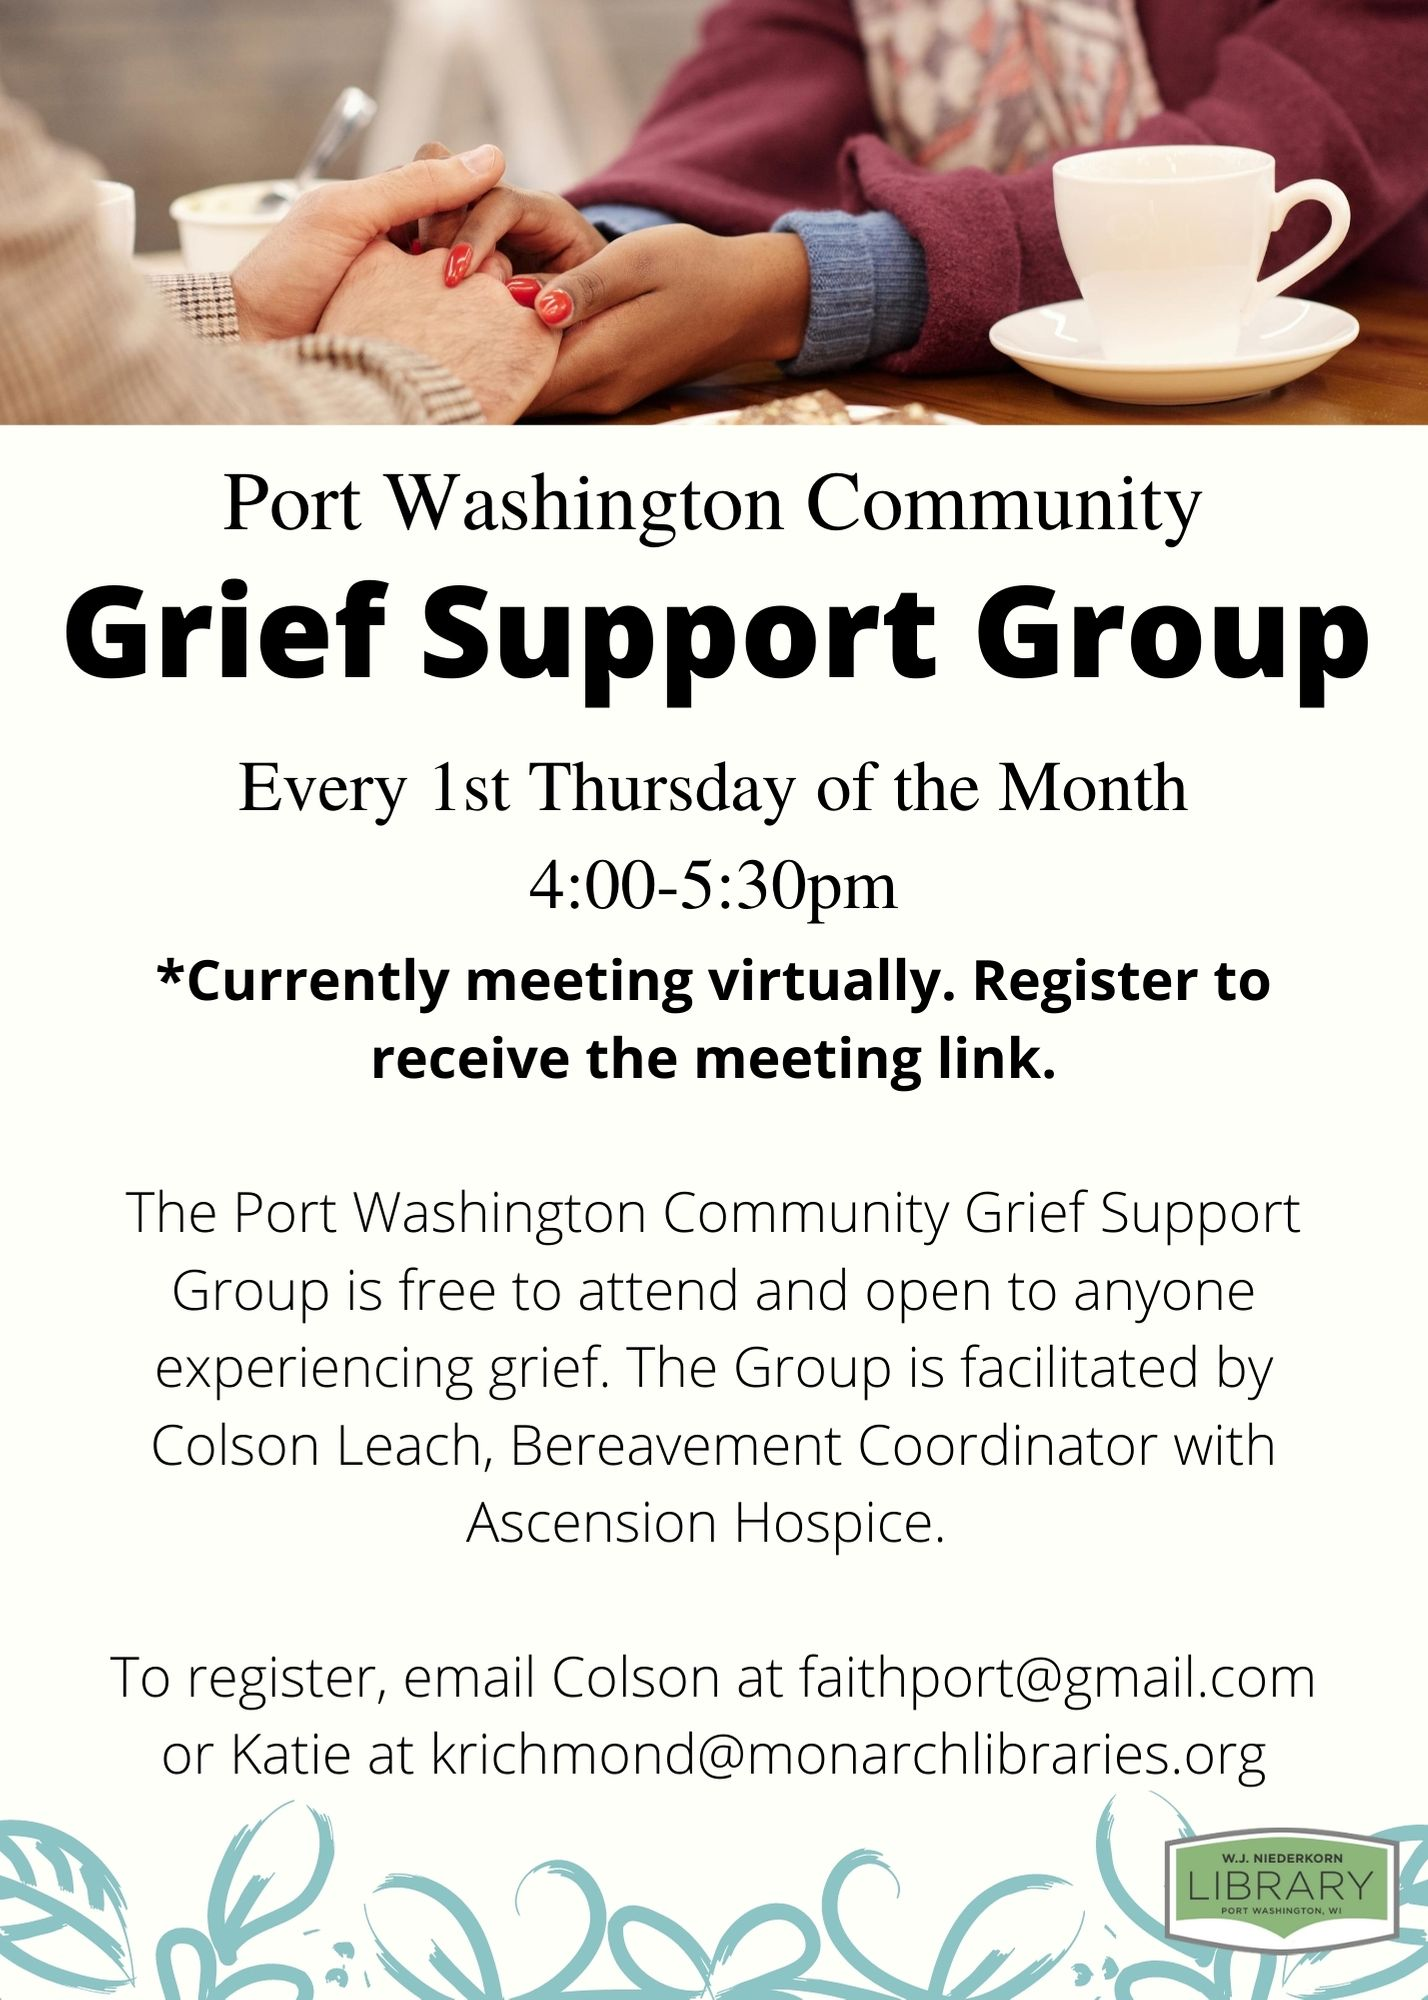 Informational flier for Grief Support Group.